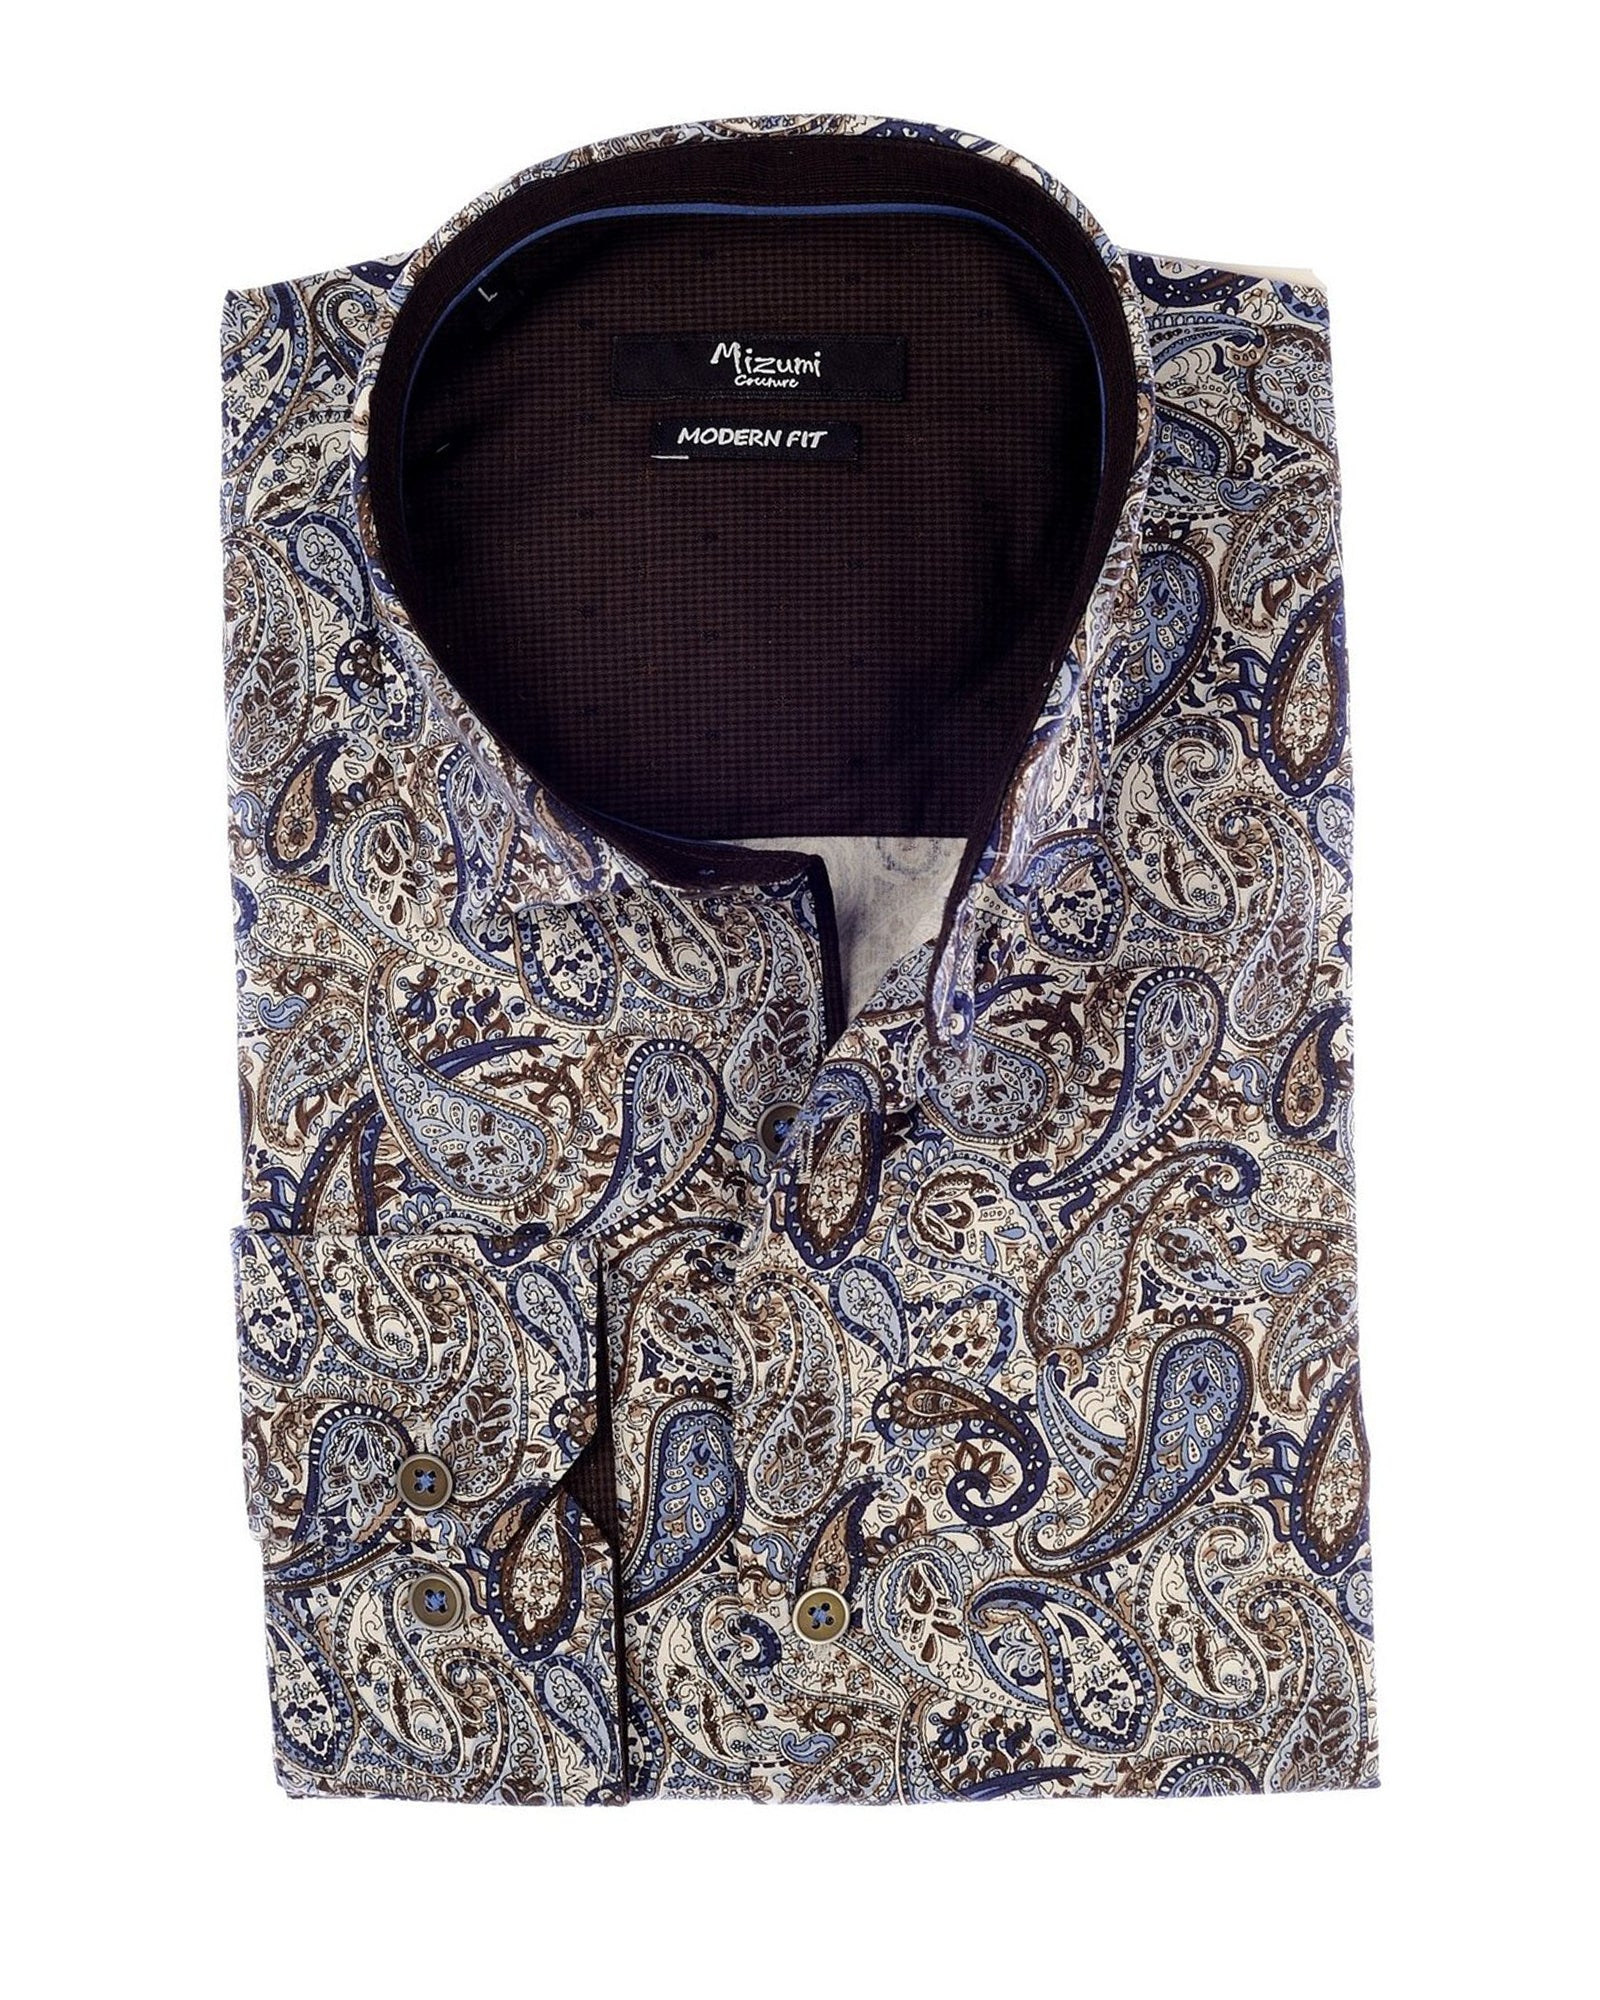 Mizumi Print Long Sleeve Hidden Button Down in Blue and Beige Paisley - Rainwater's Men's Clothing and Tuxedo Rental